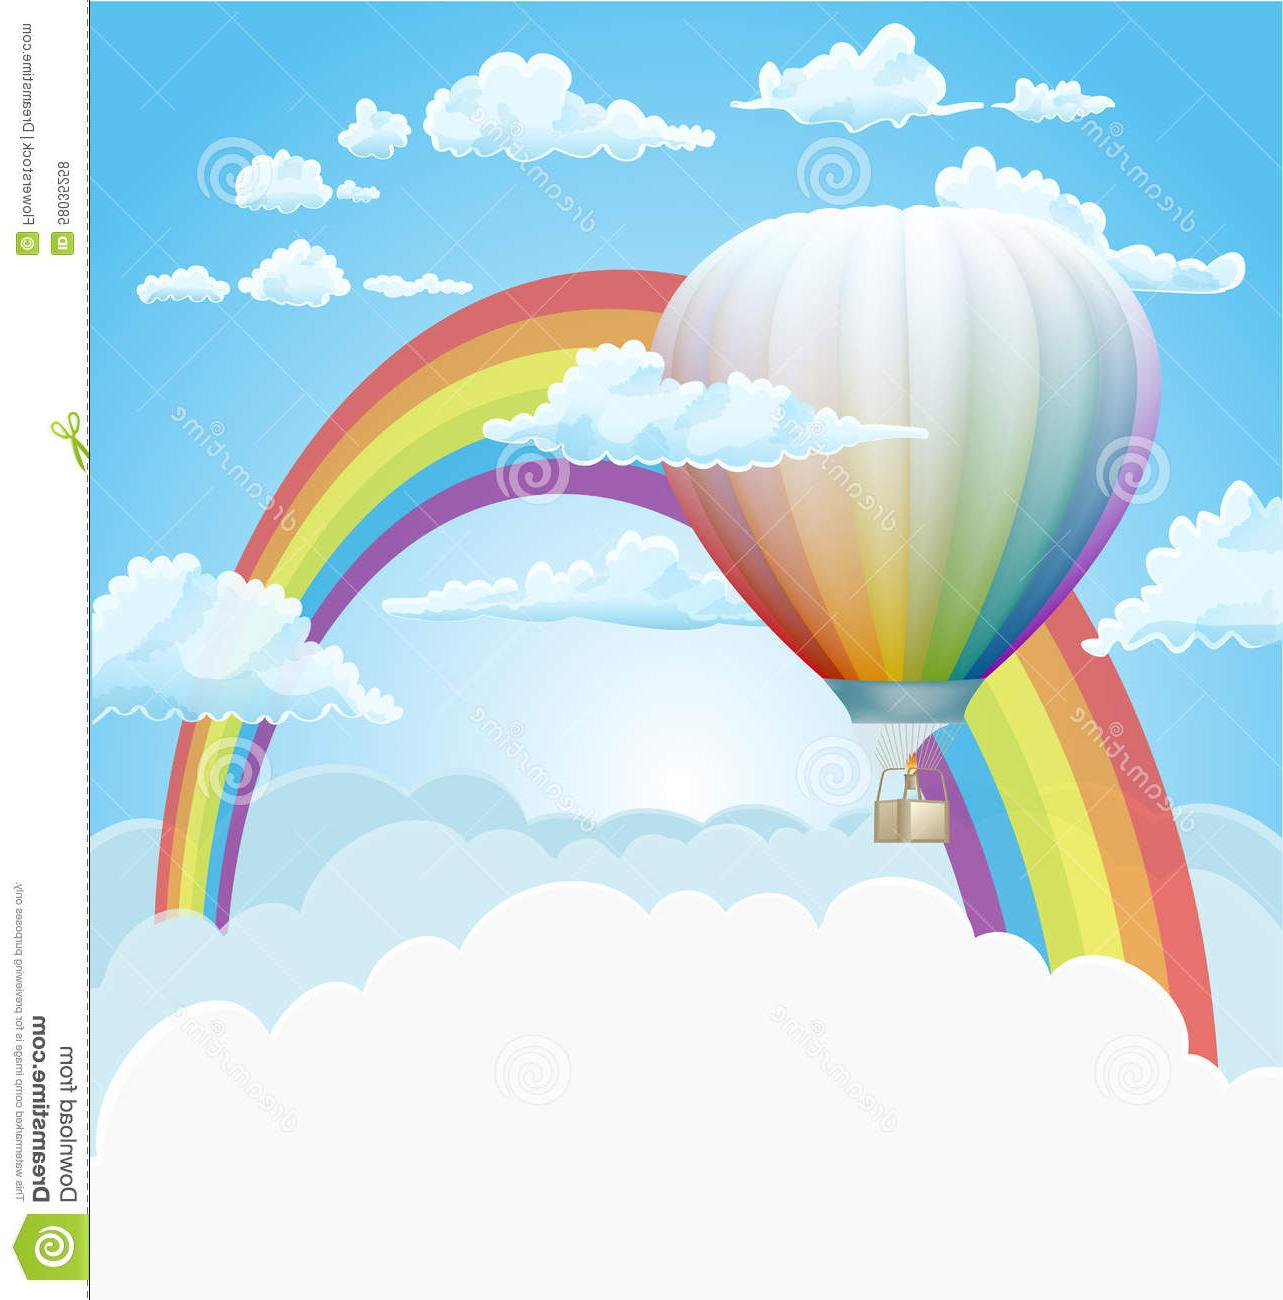 1283x1300 Best Free Hot Air Balloon Rainbow Clouds Vector Background Cdr